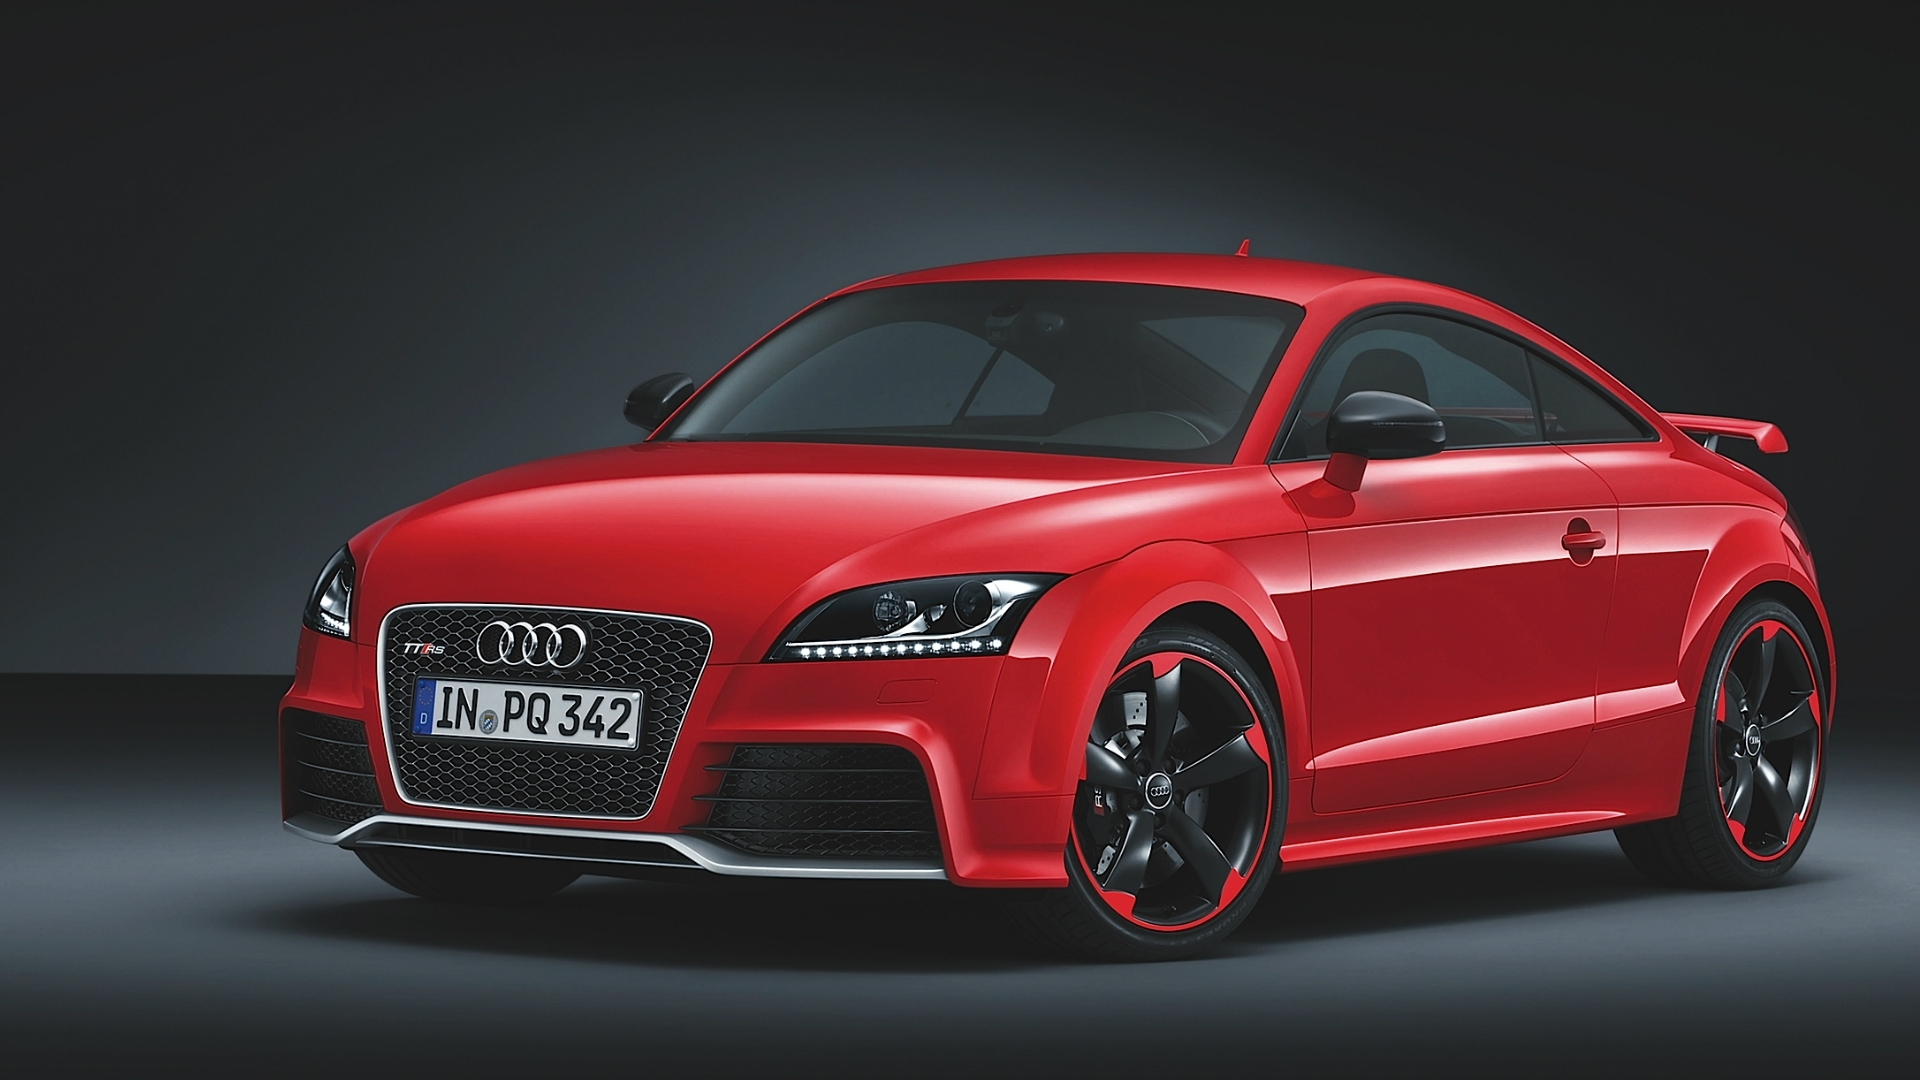 Audi Tt 2013 Wallpaper HD 1920x1080